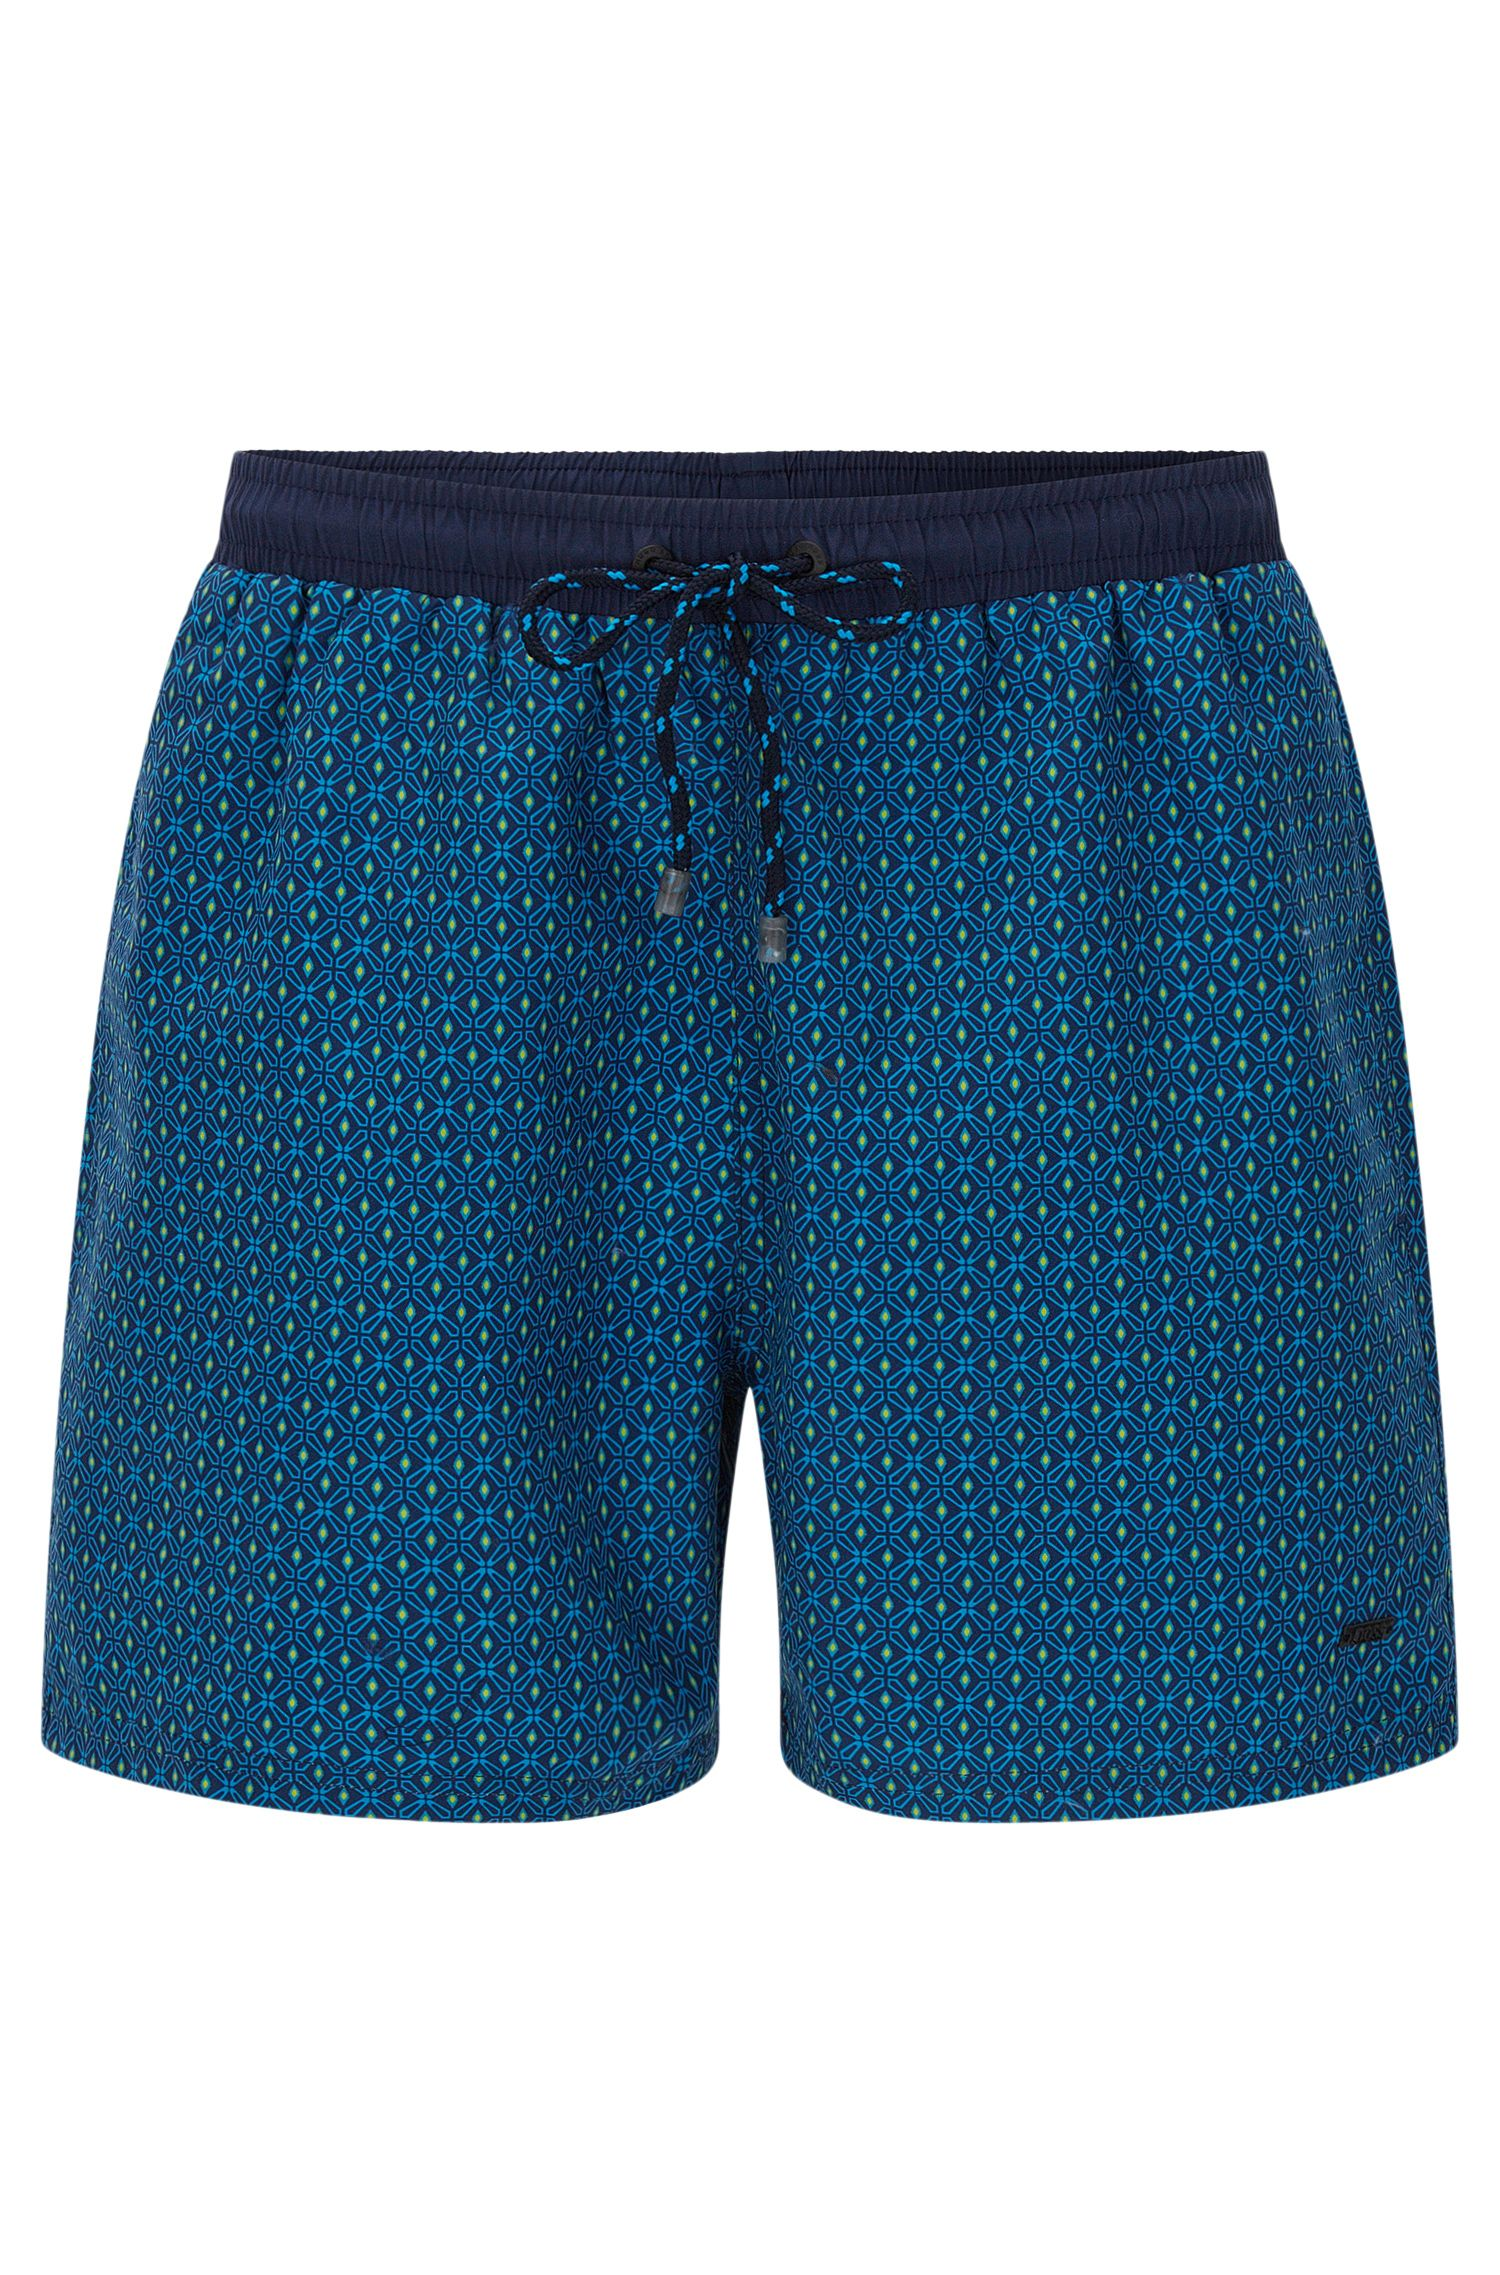 Geometric Quick Dry Swim Trunk | Piranha